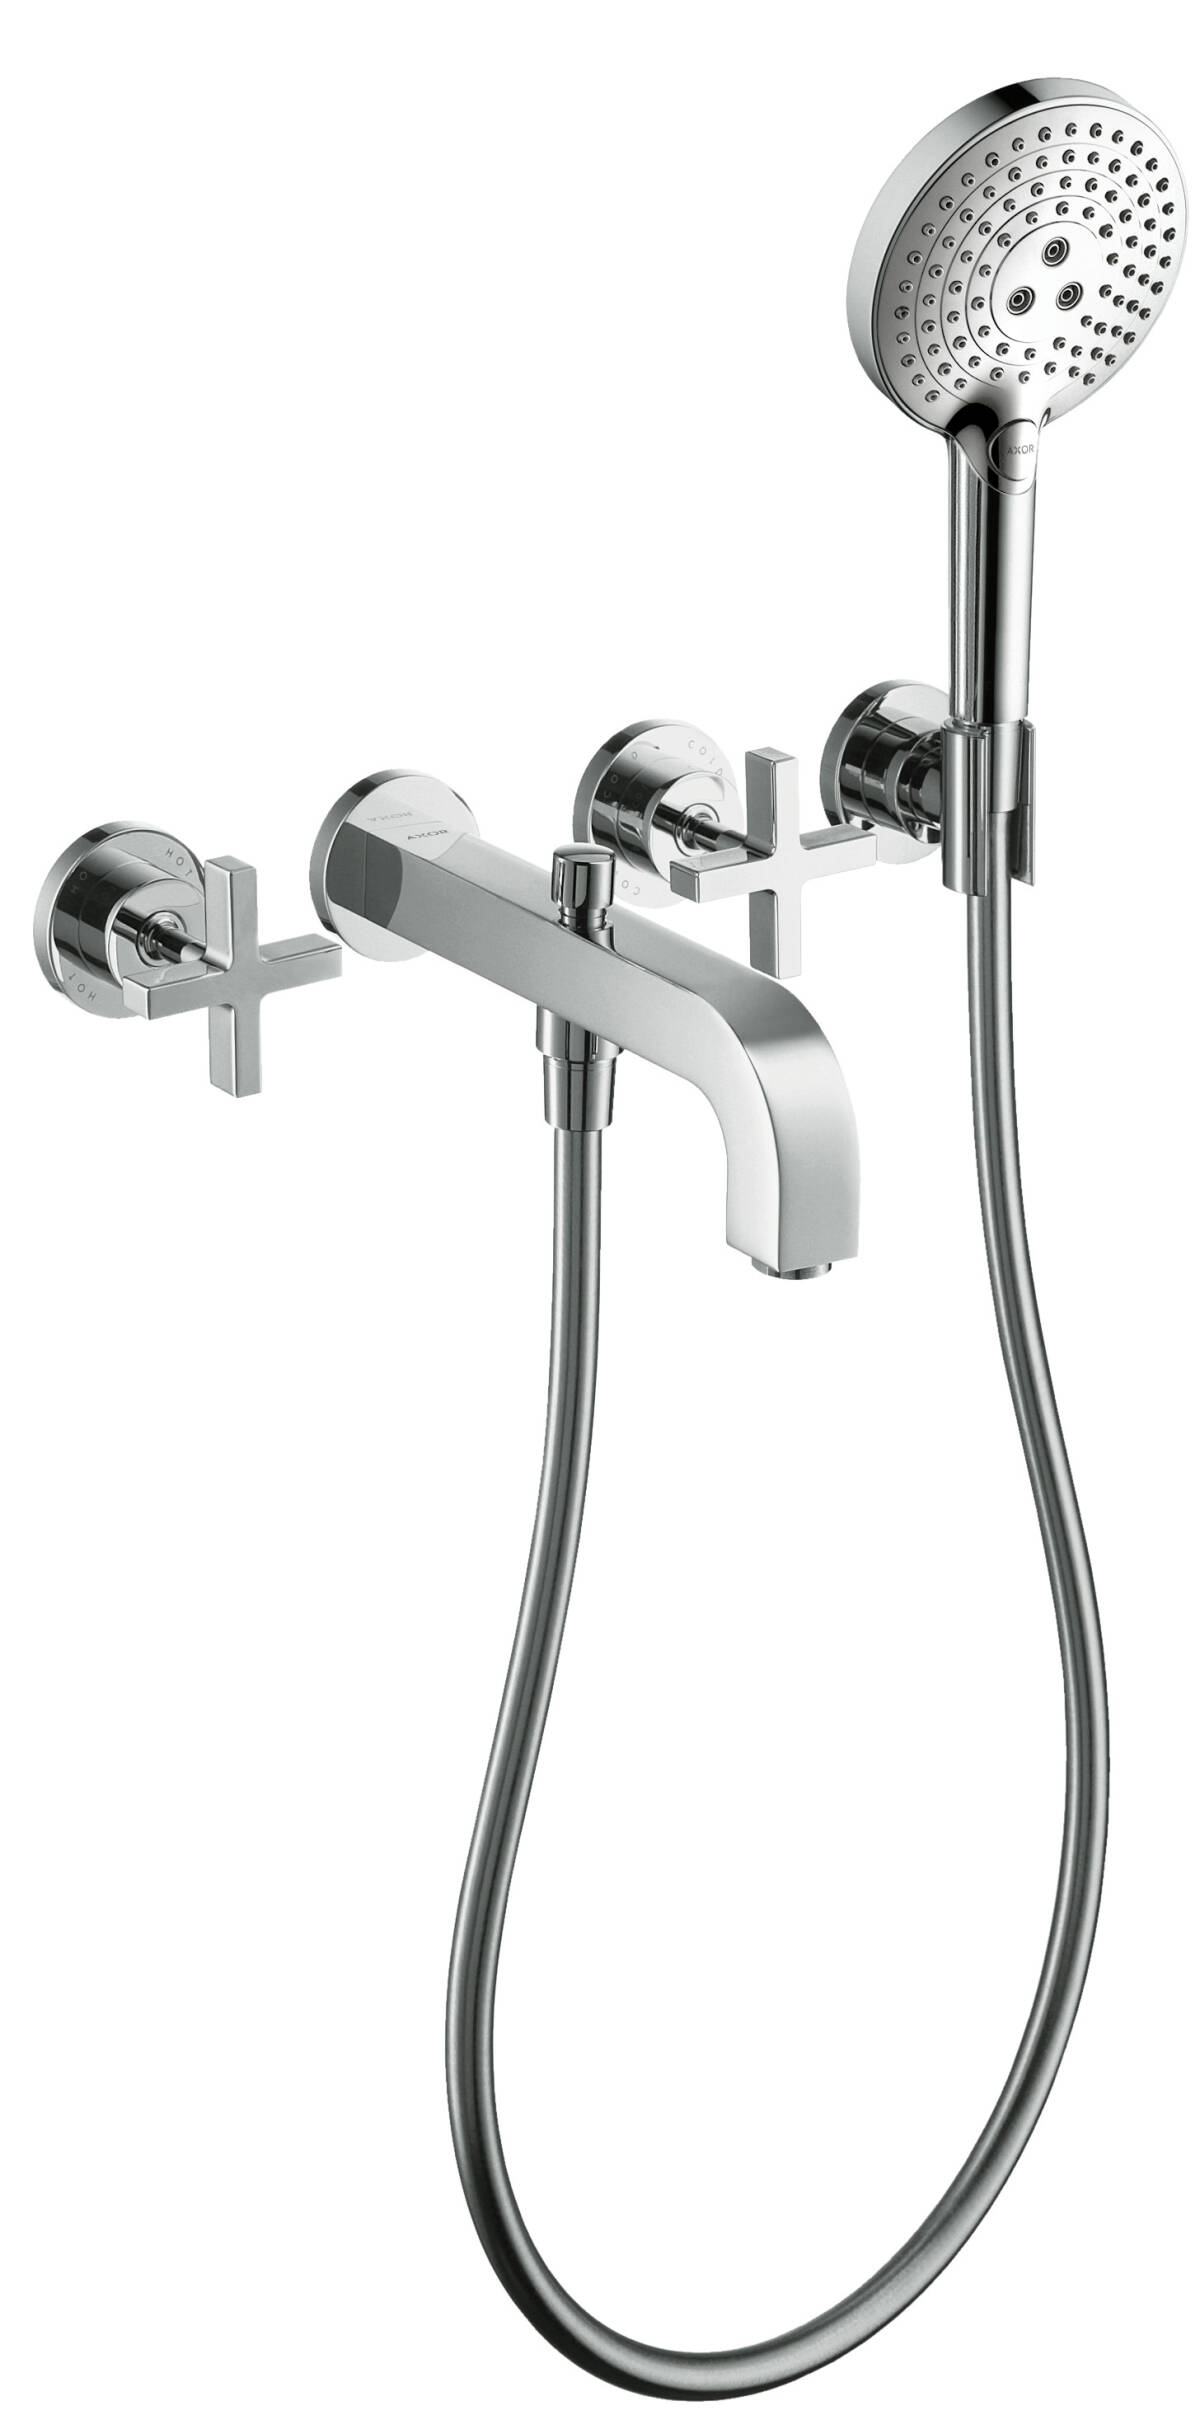 3-hole bath mixer for concealed installation wall-mounted with cross handles and escutcheons, Polished Brass, 39447930